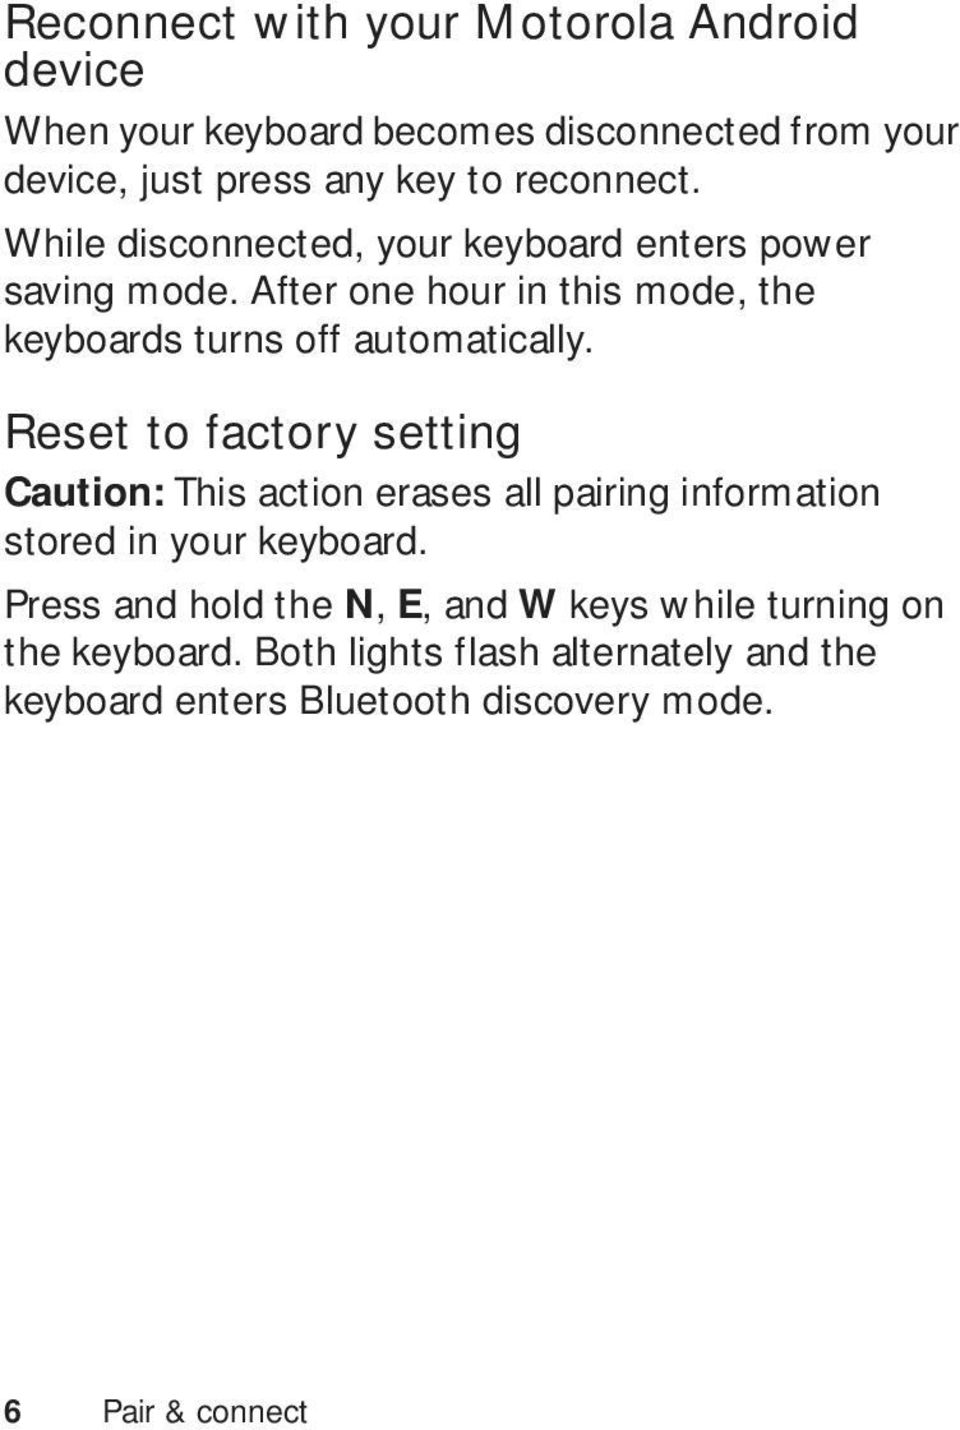 After one hour in this mode, the keyboards turns off automatically.